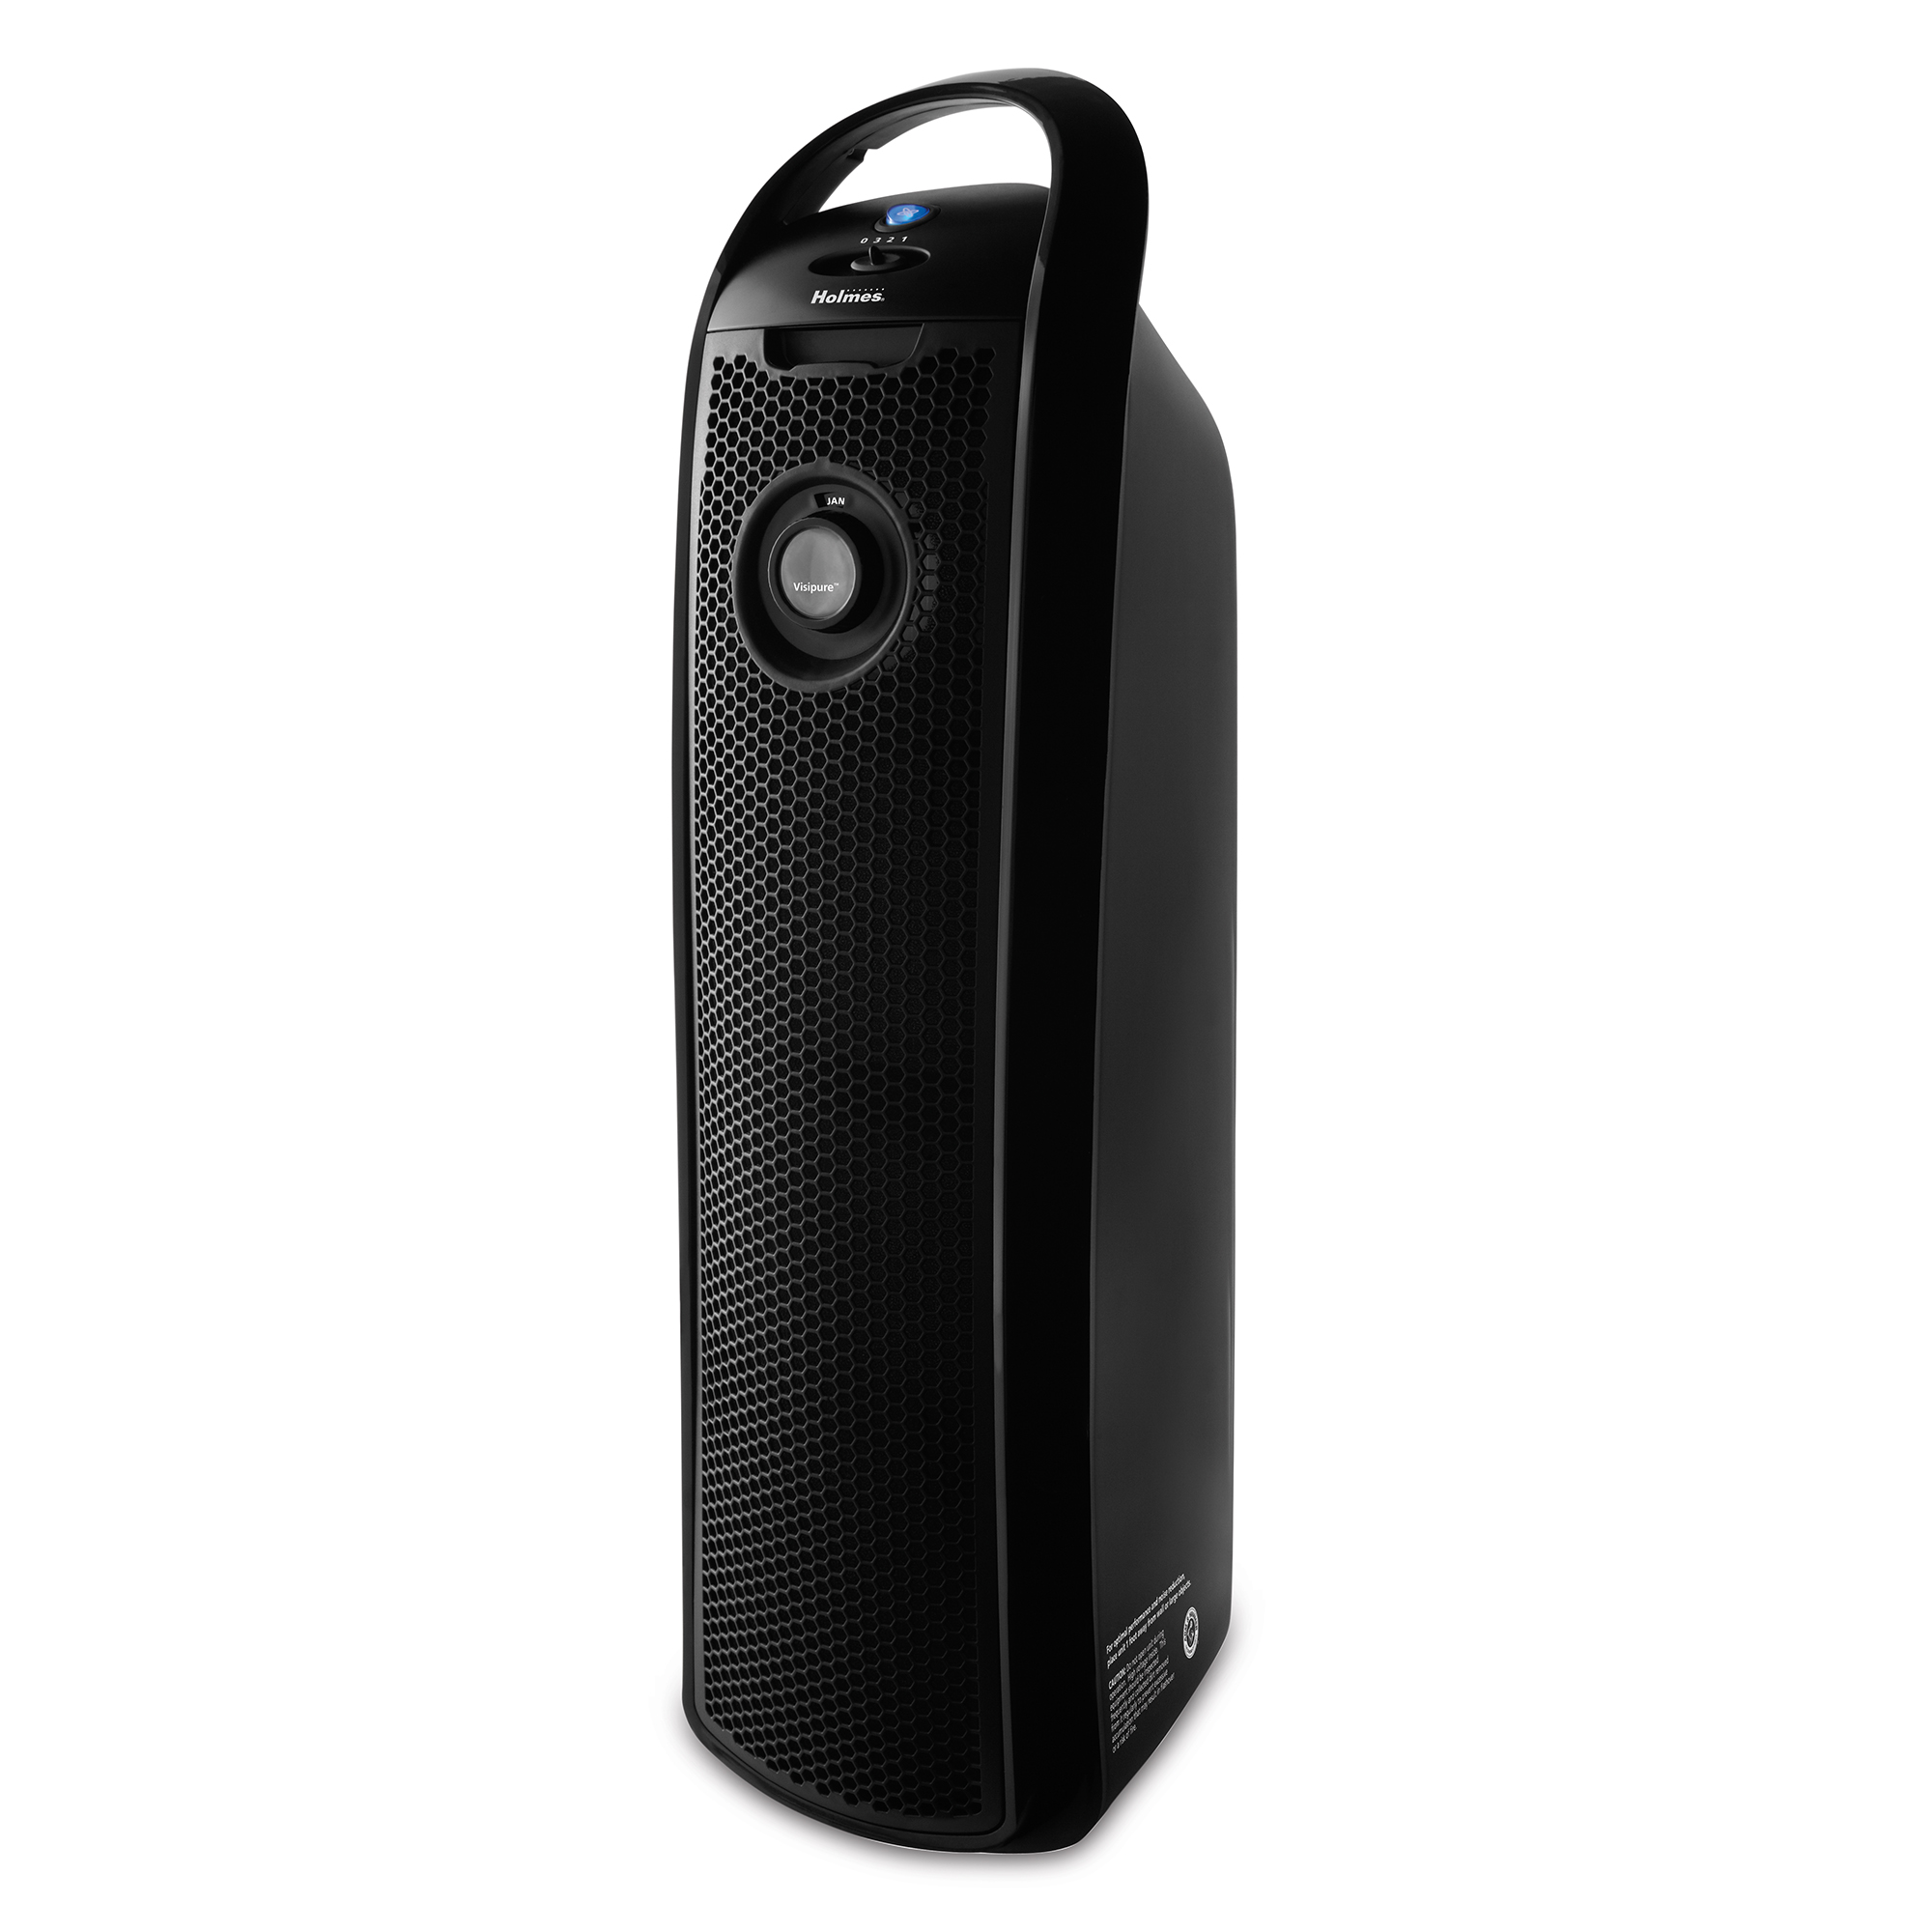 Holmes aer1 Tower HEPA Air Purifier with Air Ionizer and Visipure Air Filter Viewing Window (HAP9423 UHA)